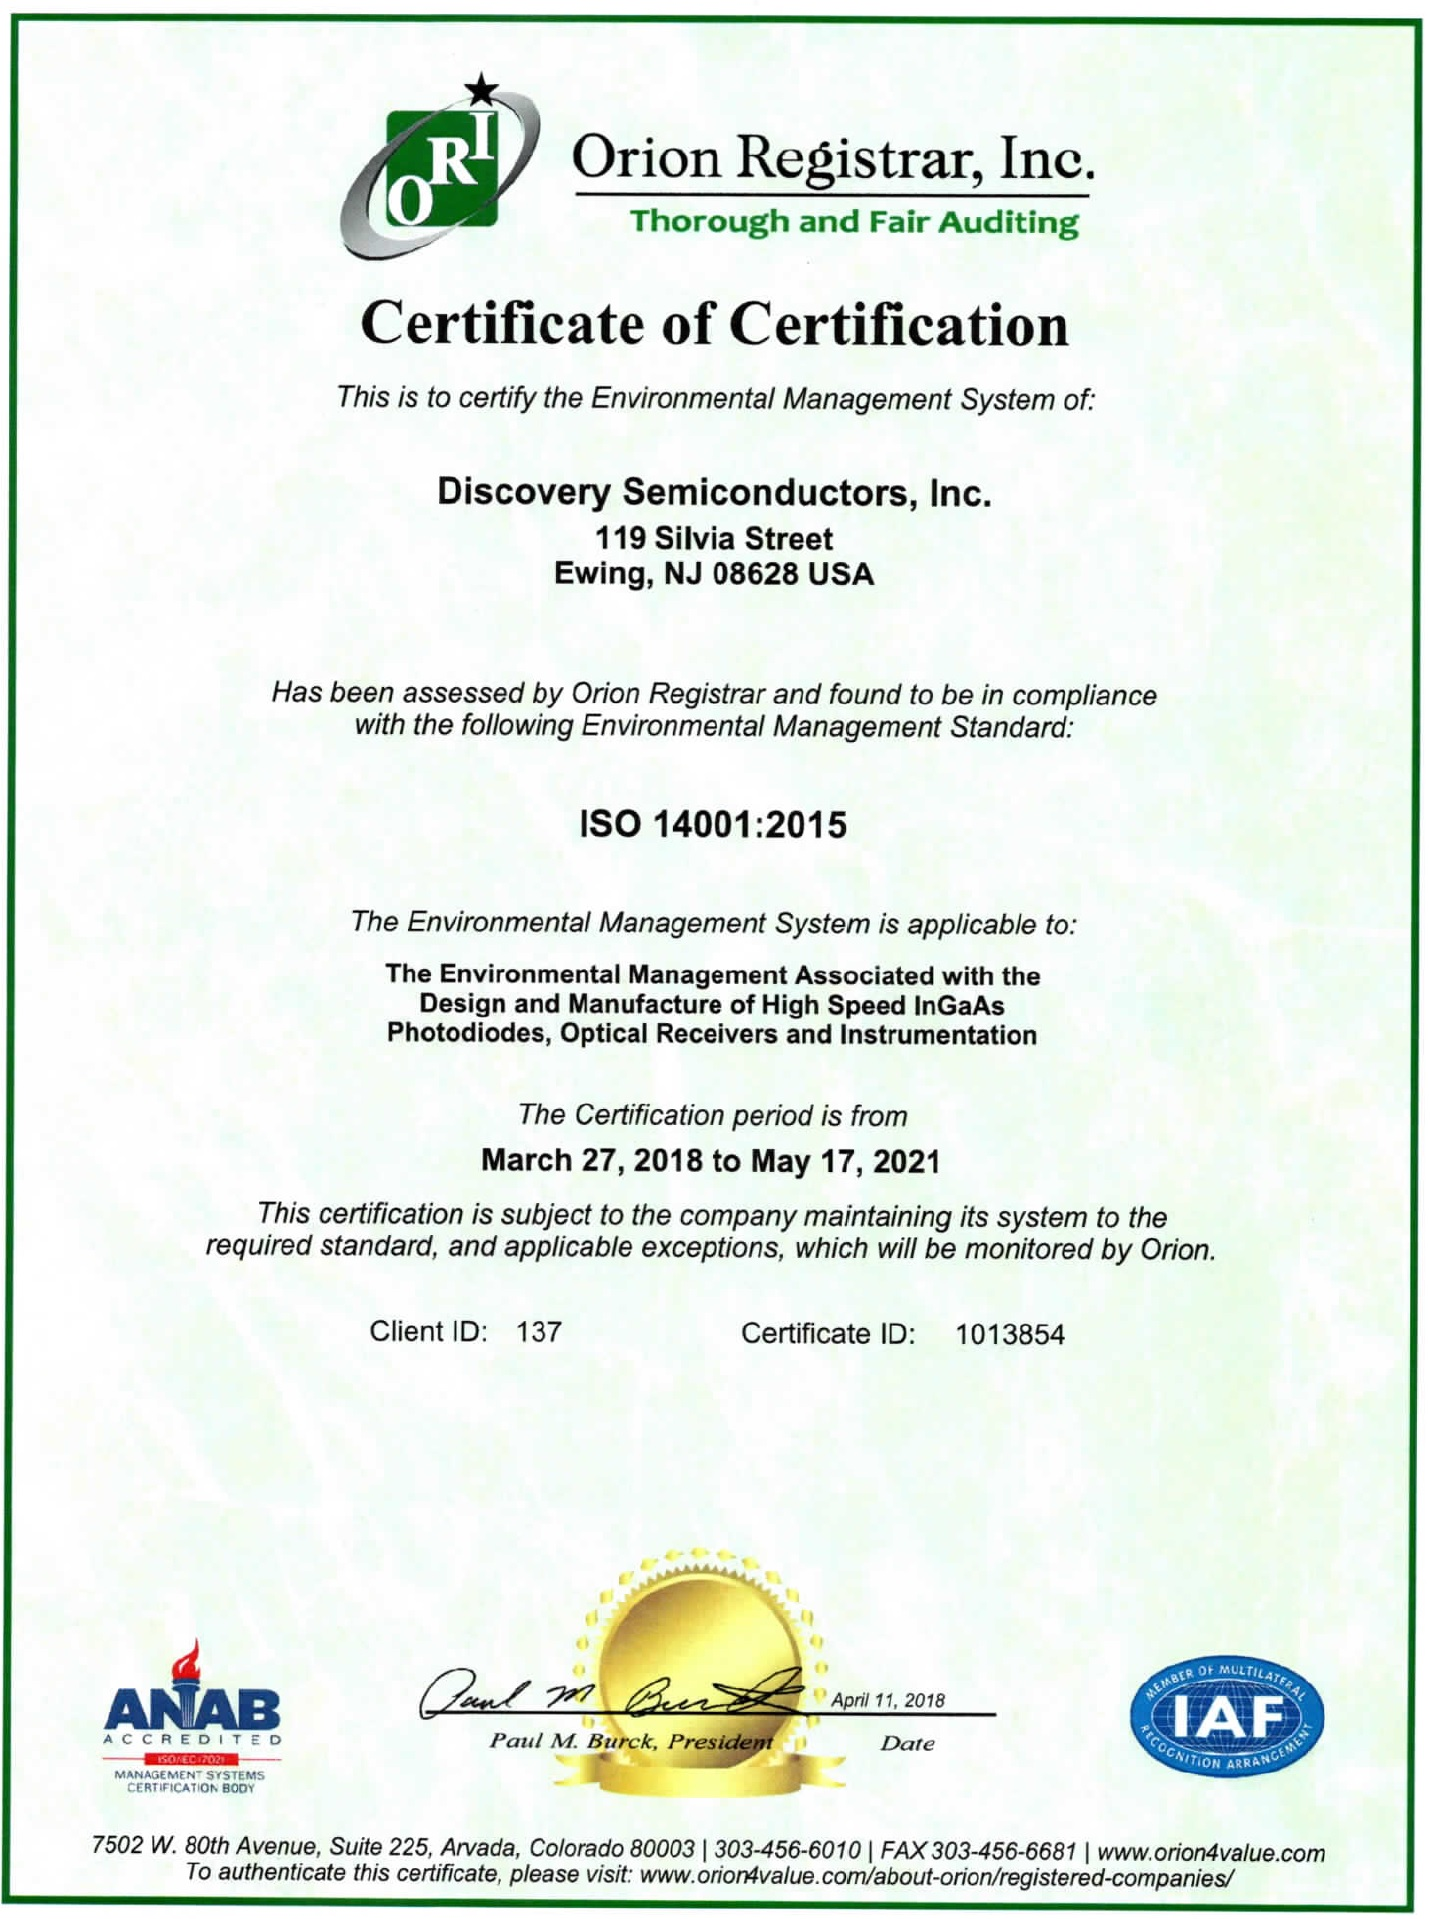 Discovery Semiconductors is an ISO 14001:2015 Certified Company